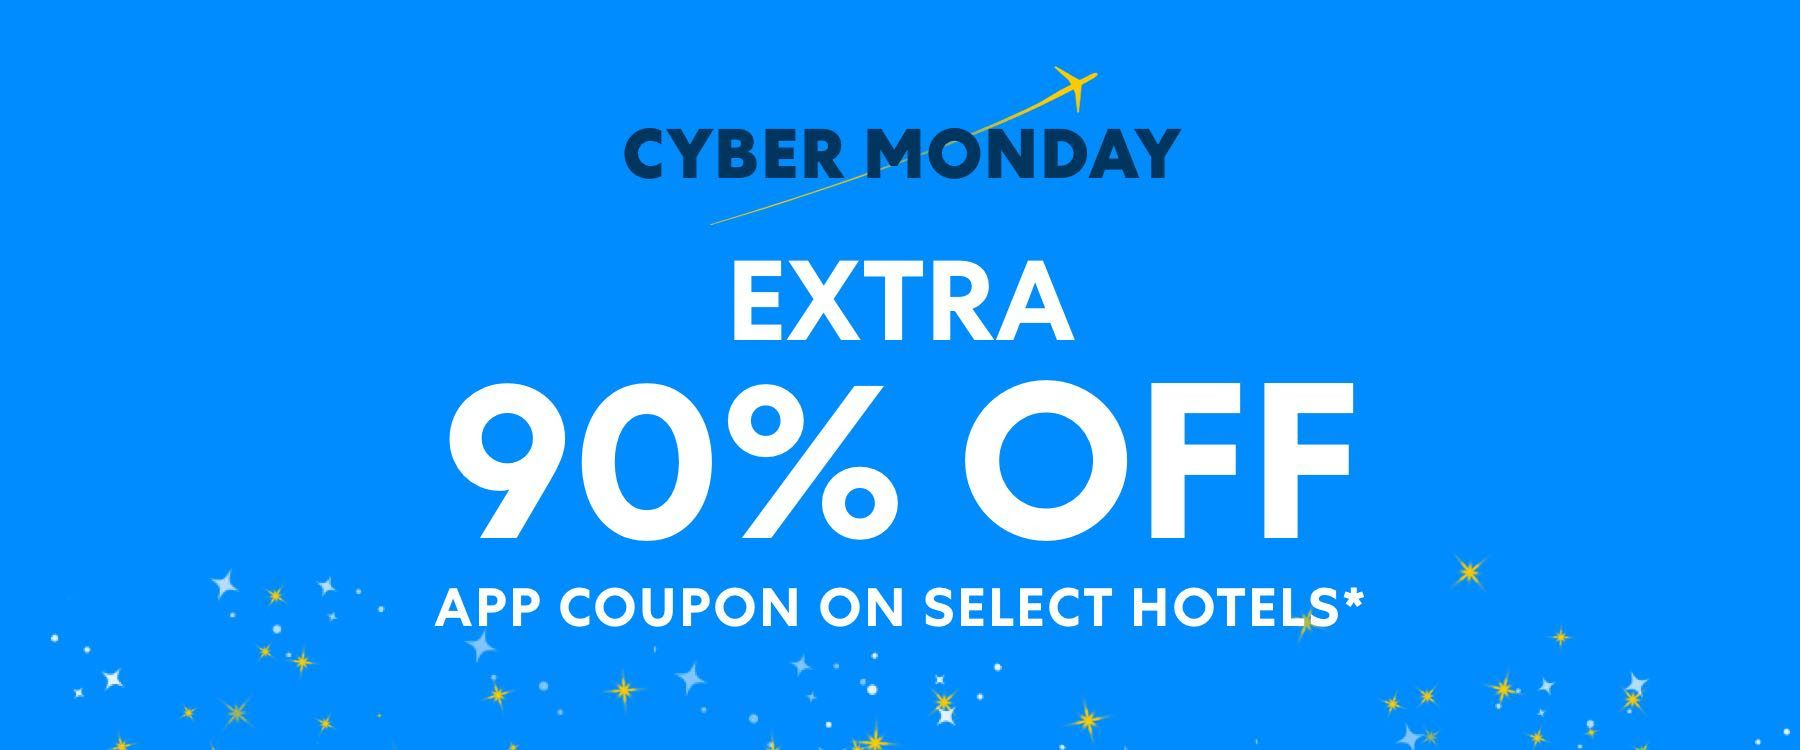 Expedia Vacation Extra 90 off app coupon on select hotels